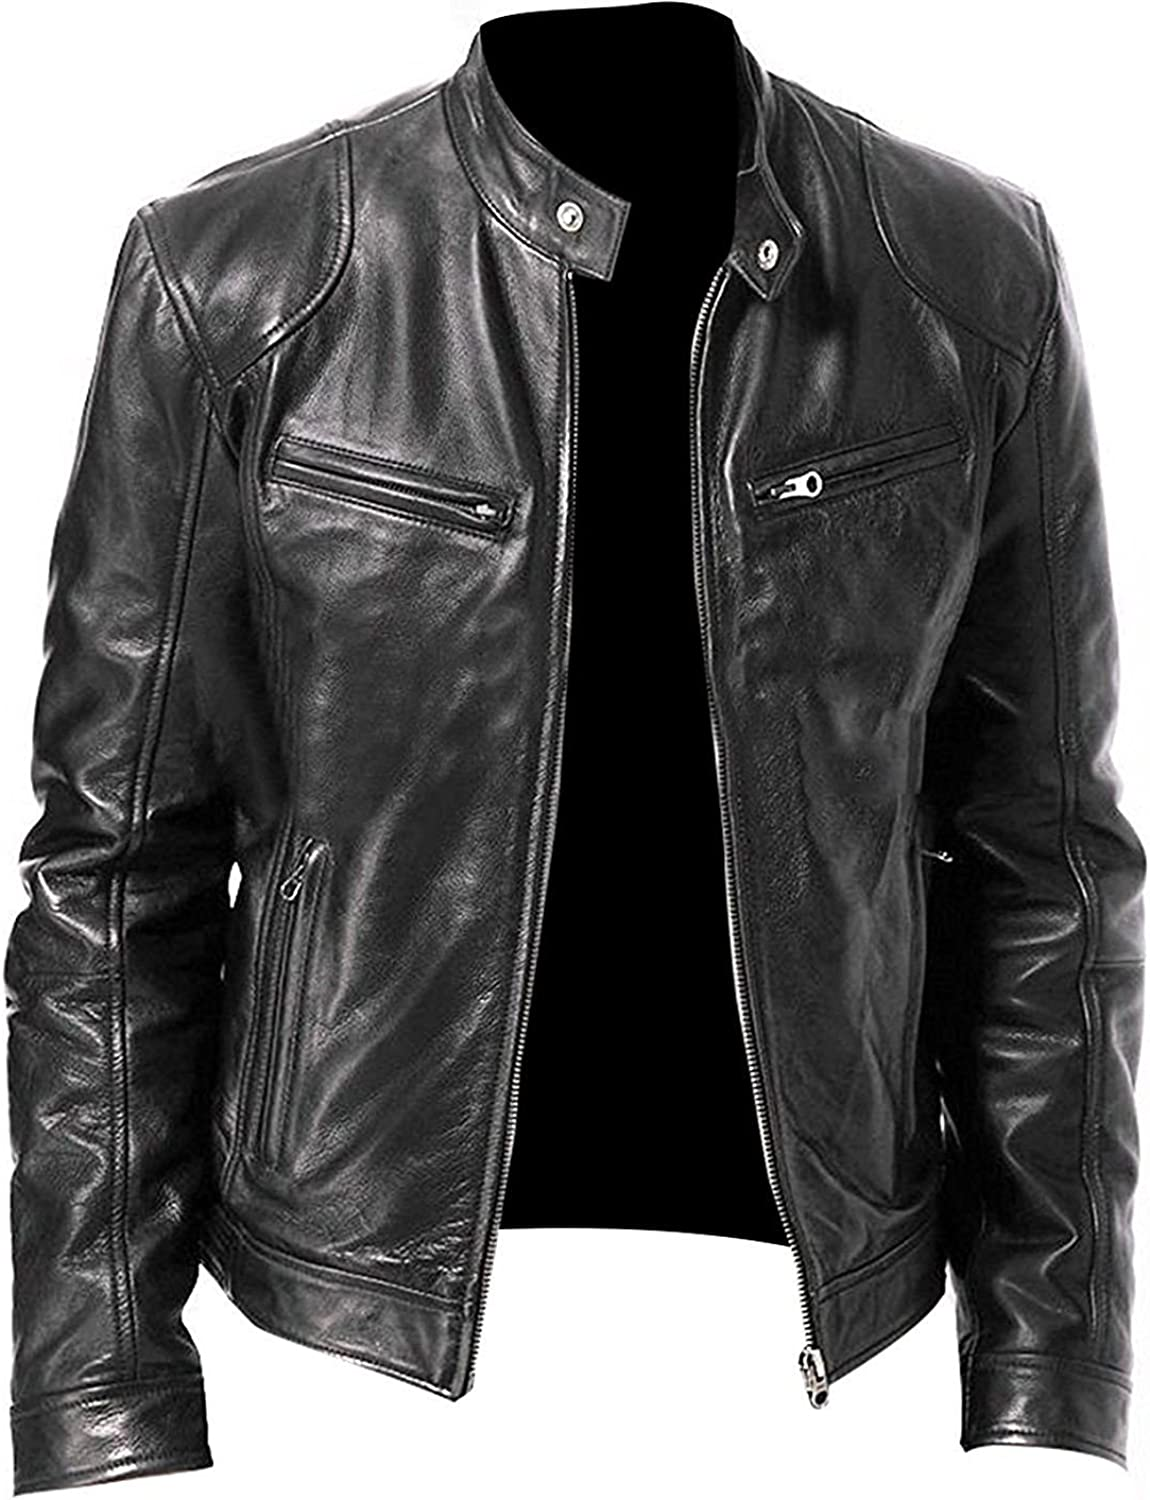 Mens Cafe Racer Brando Vintage Motorcycle Retro Biker Leather Outerwear Jacket Collection Real/Faux